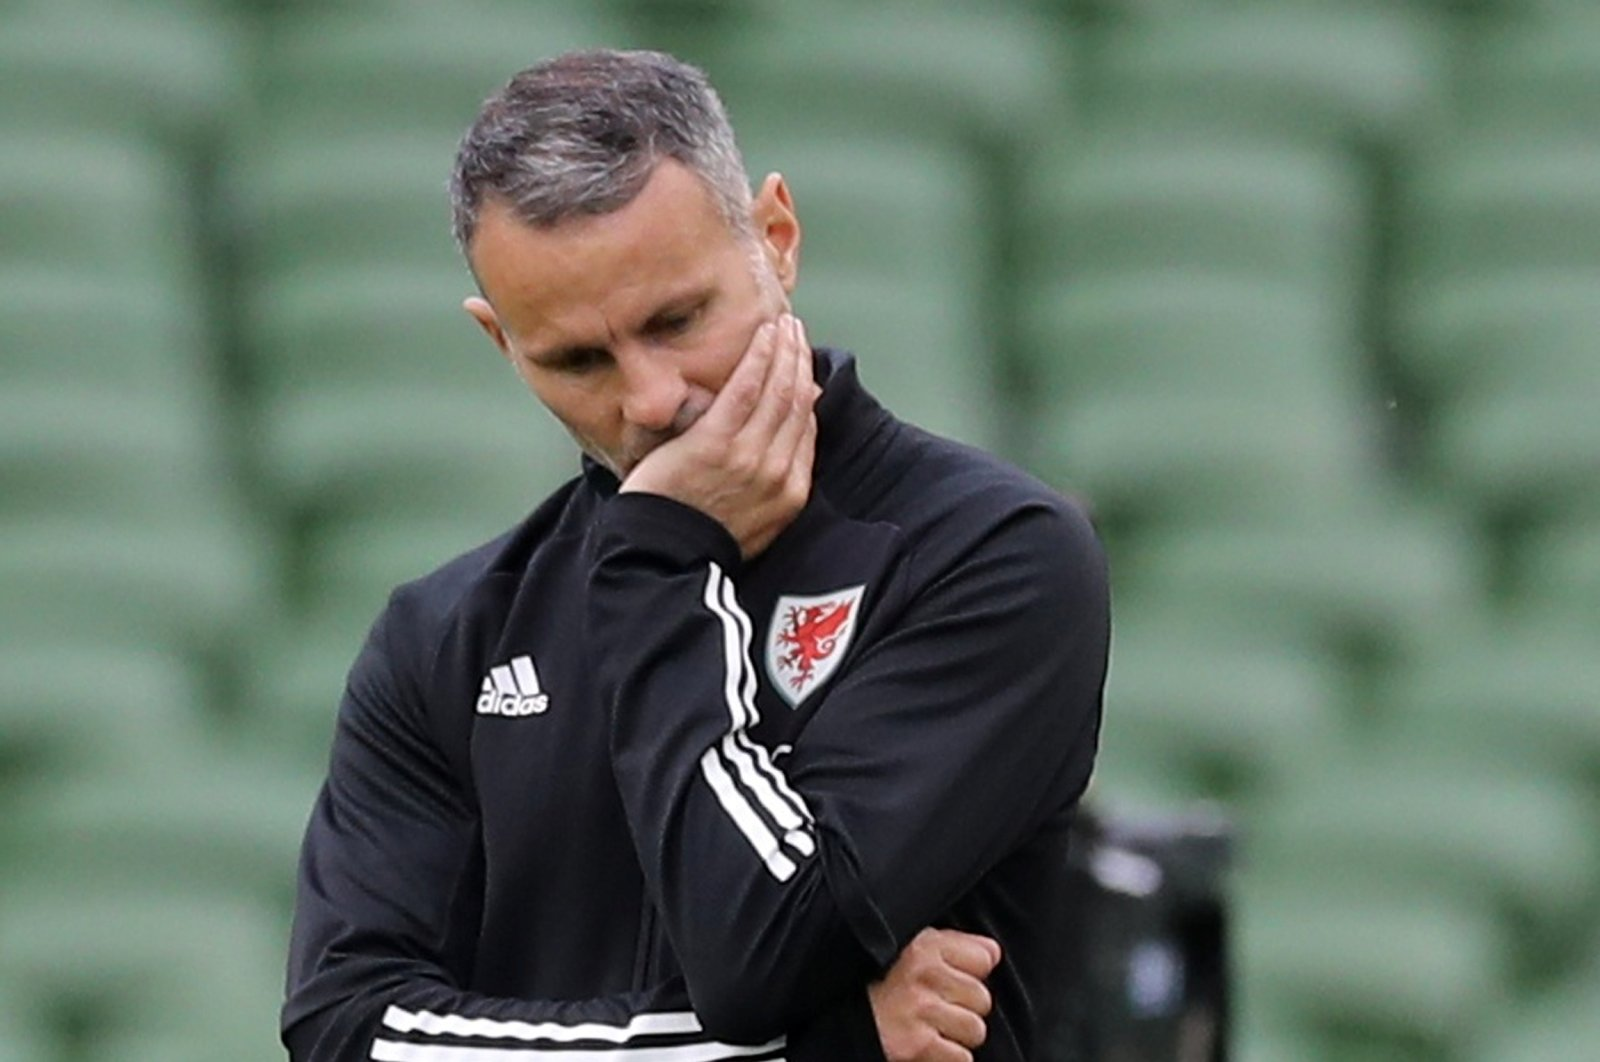 Wales manager Ryan Giggs during the UEFA Nations League match between the Republic of Ireland and Wales, Aviva Stadium, Dublin, Ireland, Oct. 11, 2020. (Reuters File Photo)